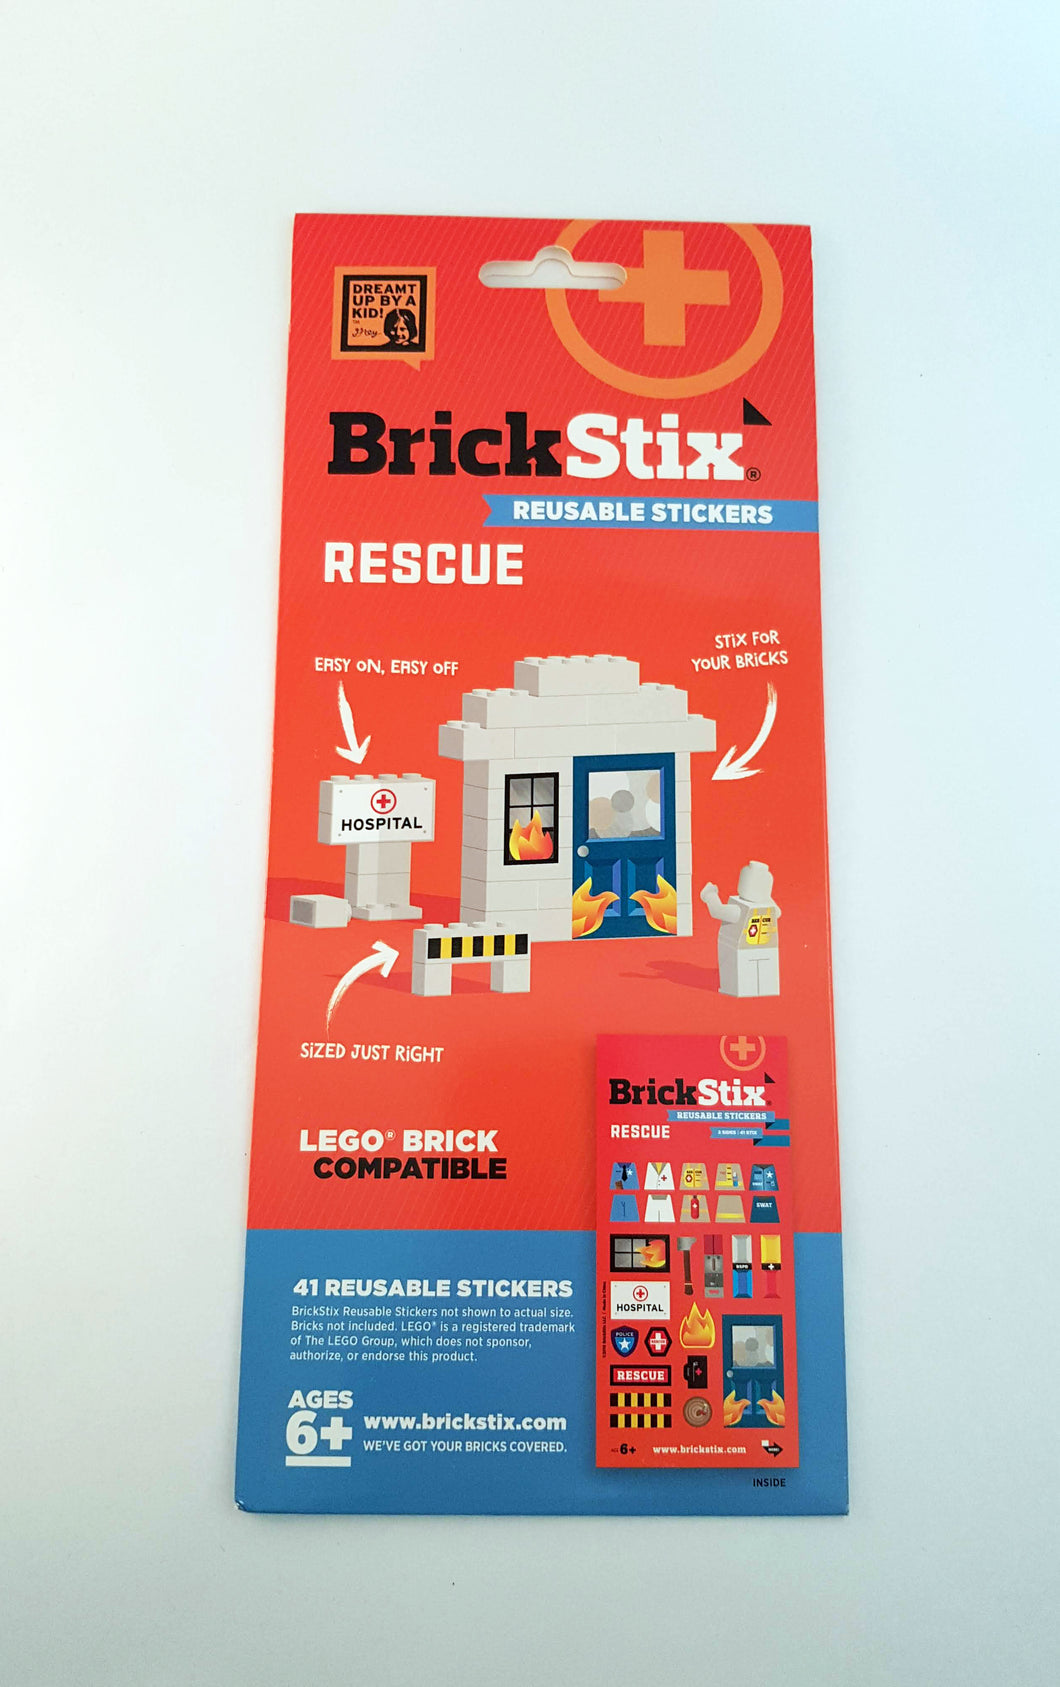 brickstix-reusable-stickers-rescue